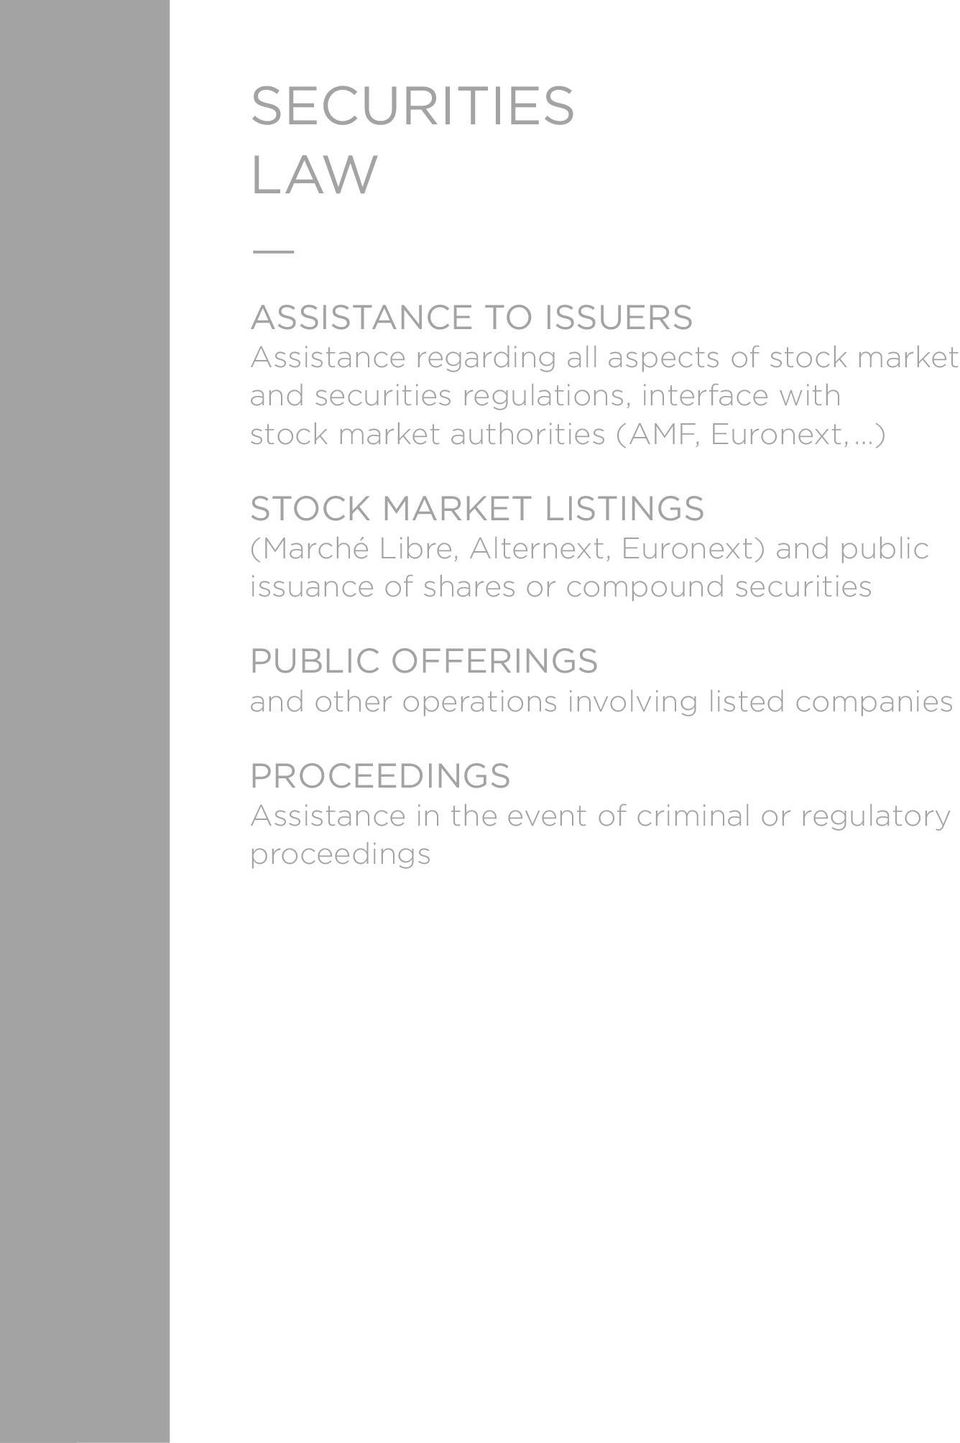 Libre, Alternext, Euronext) and public issuance of shares or compound securities PUBLIC OFFERINGS and